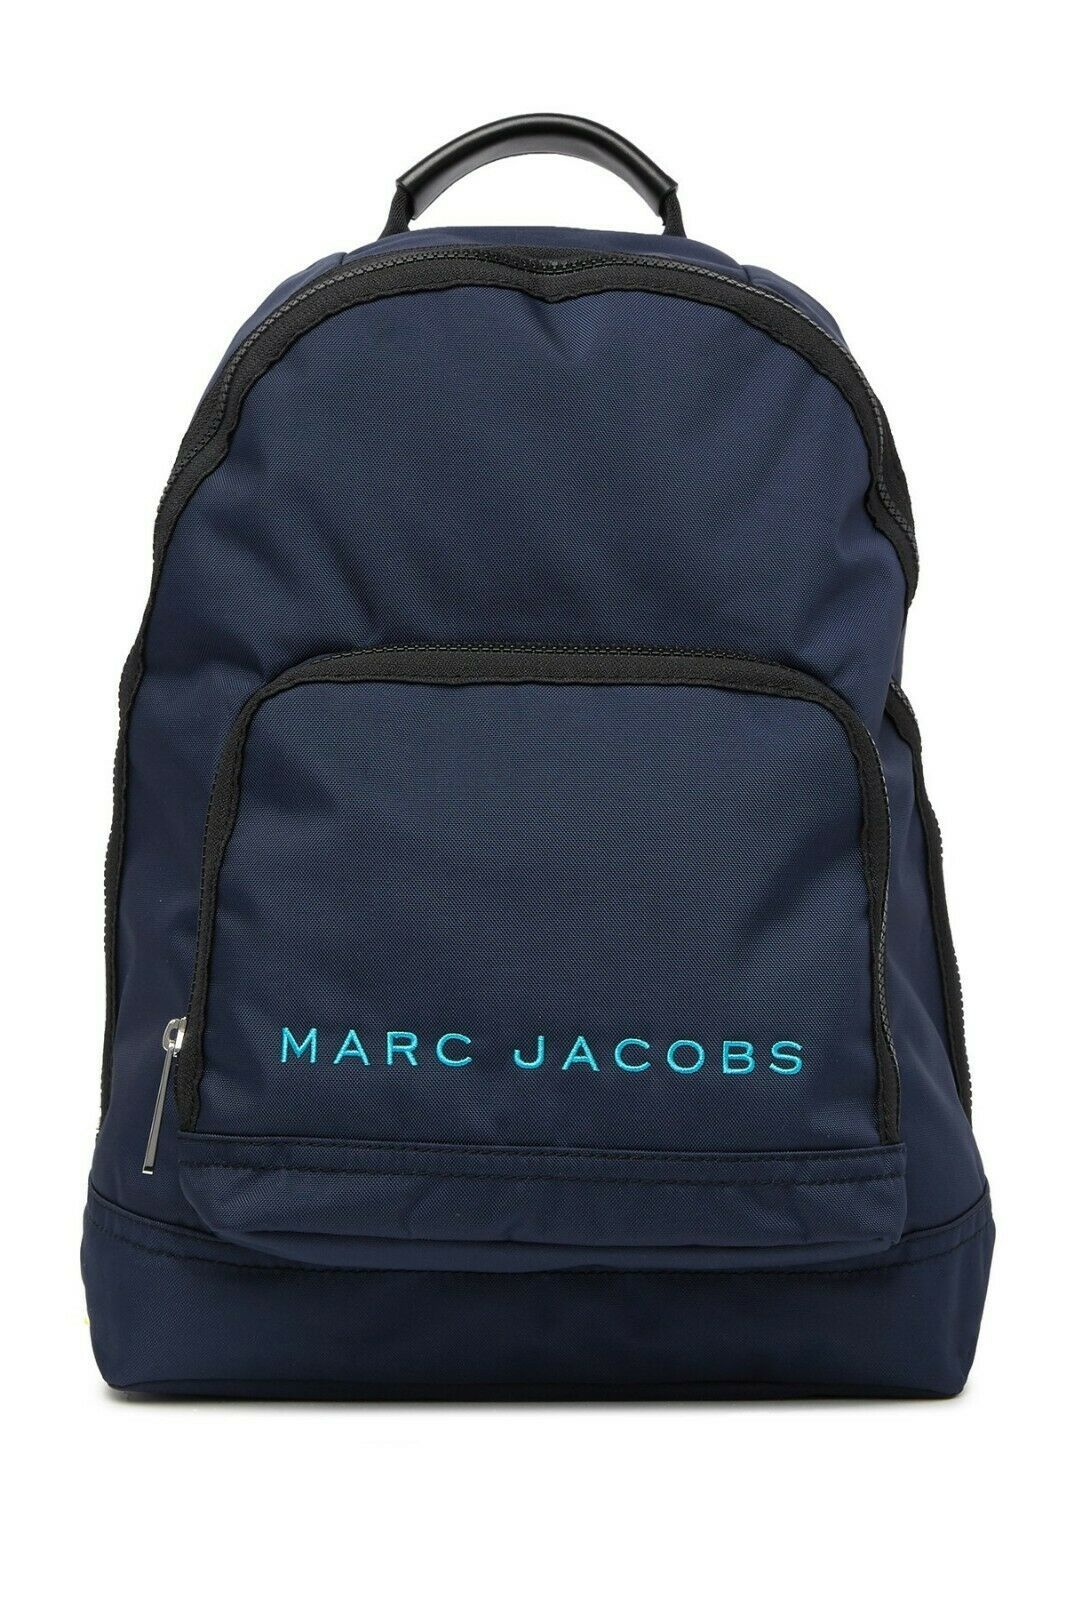 Primary image for Marc Jacobs All Star Backpack Indigo